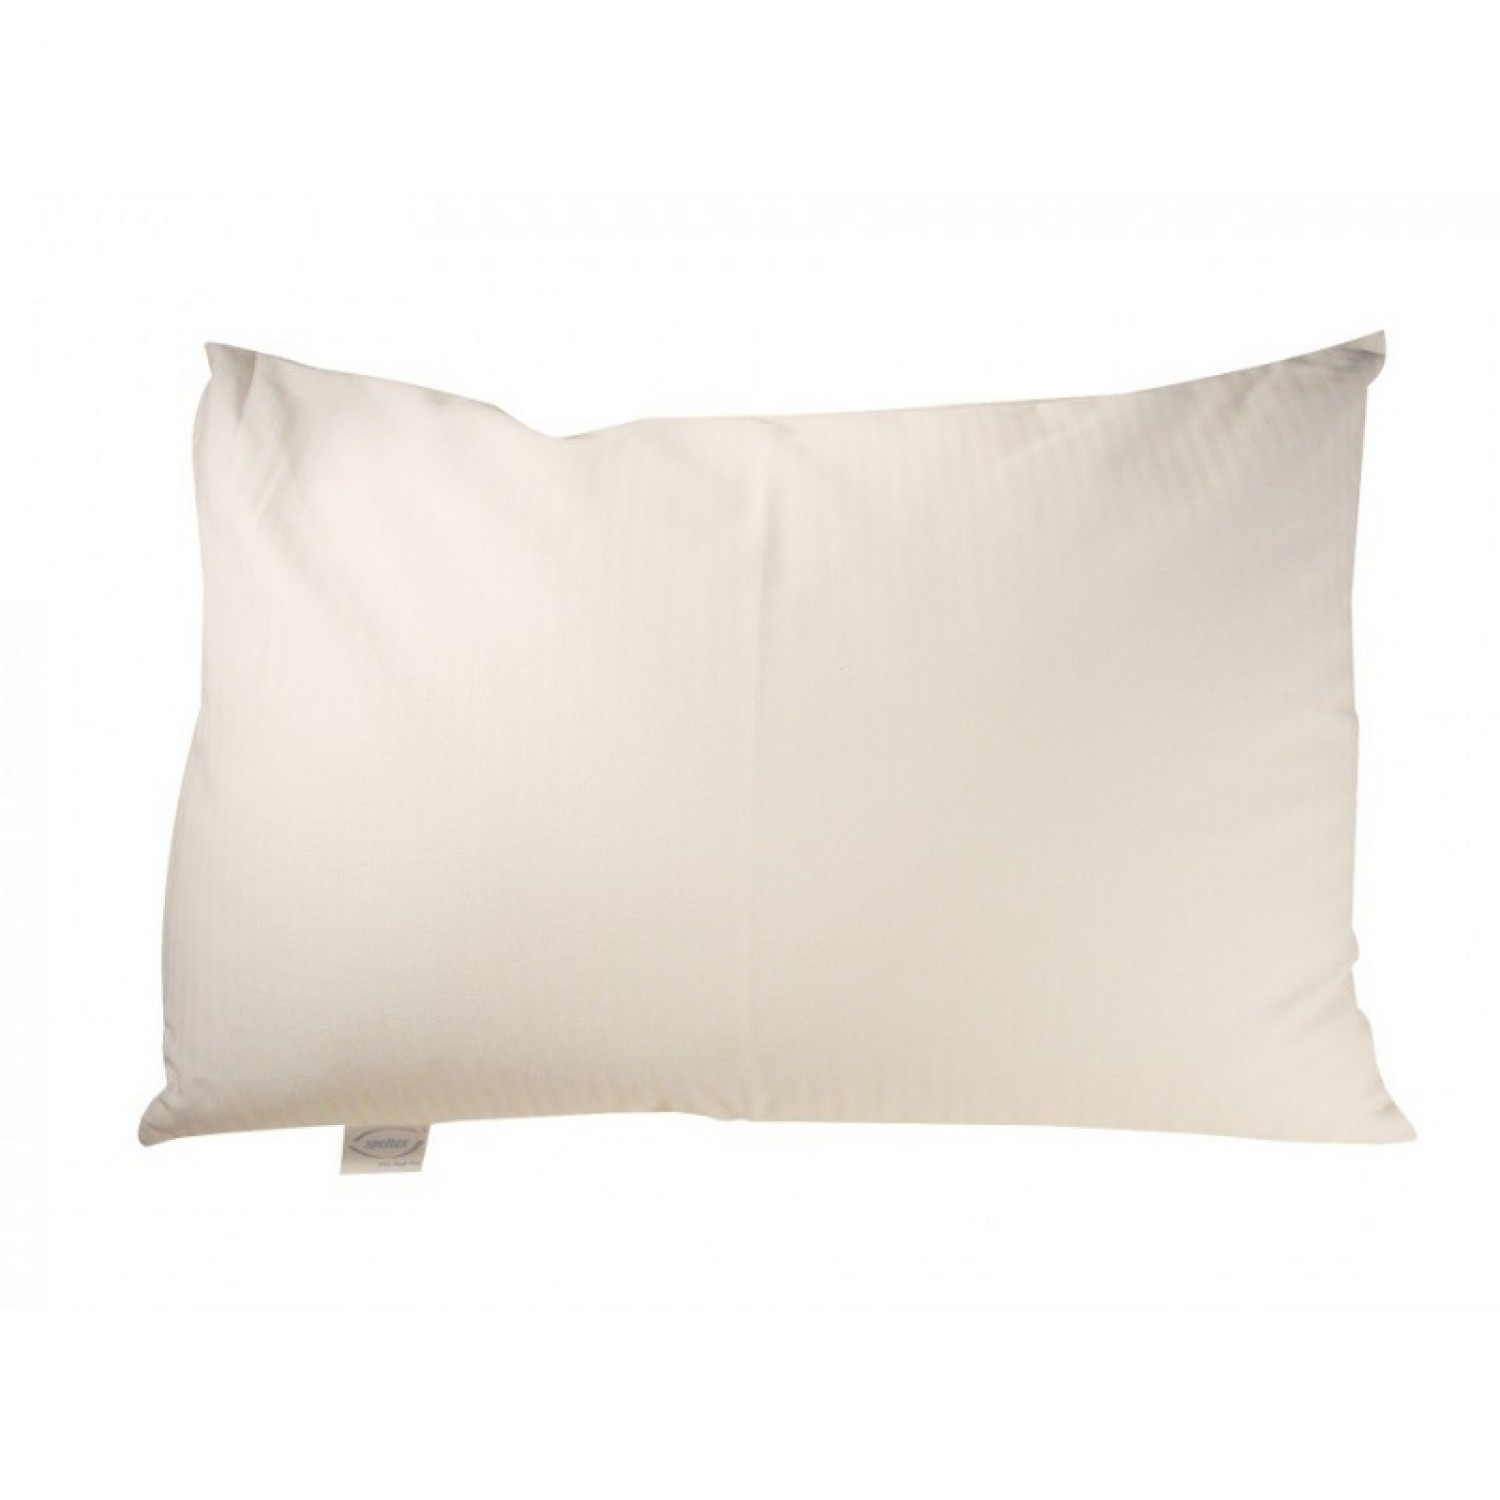 Pillow with Organic Millet Husks & Rubber